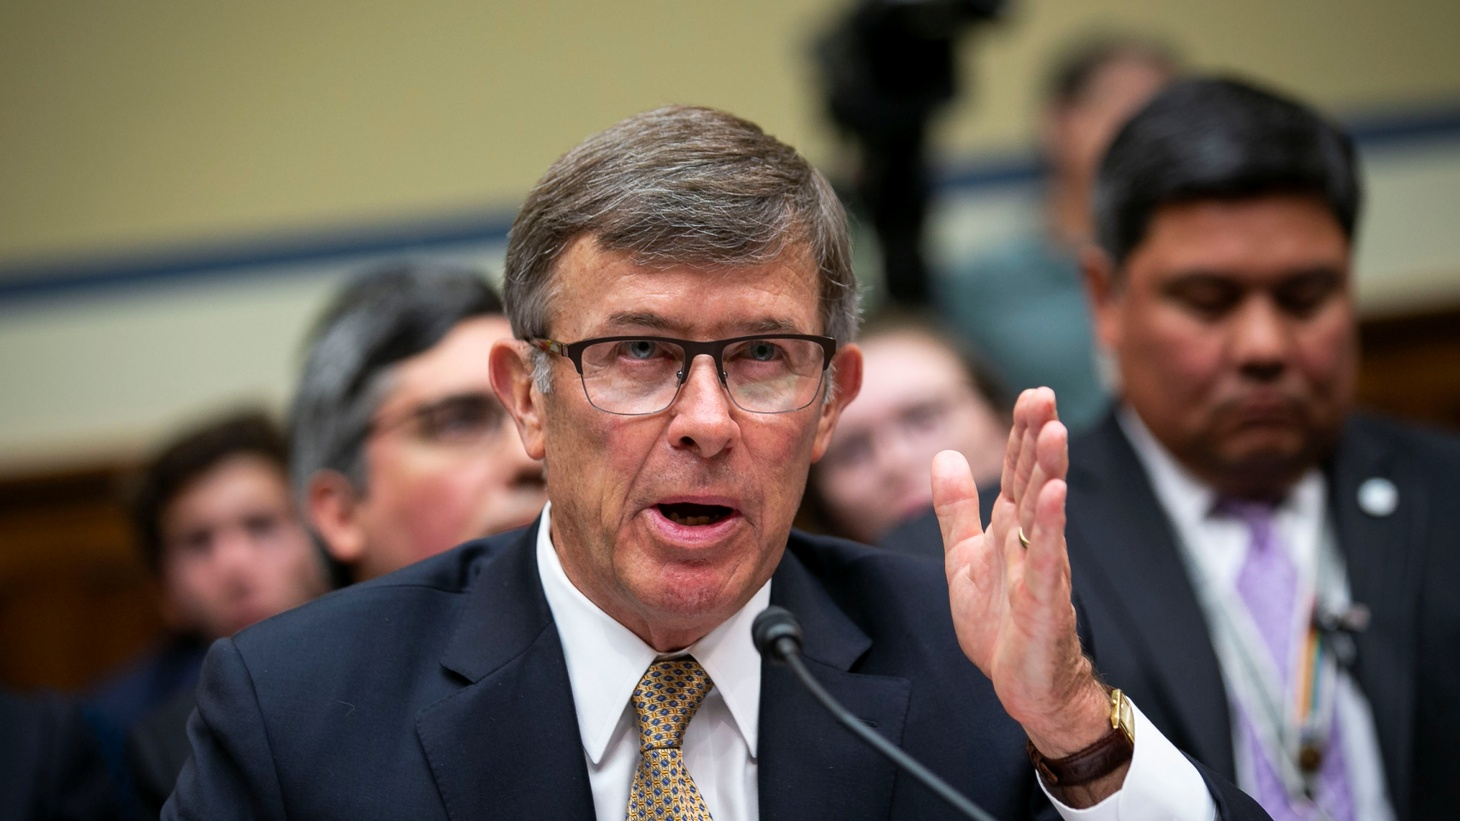 oseph Maguire, acting director of national intelligence, testifies during a House Permanent Select Committee on Intelligence, on Capitol Hill in Washington, U.S., September 26, 2019.